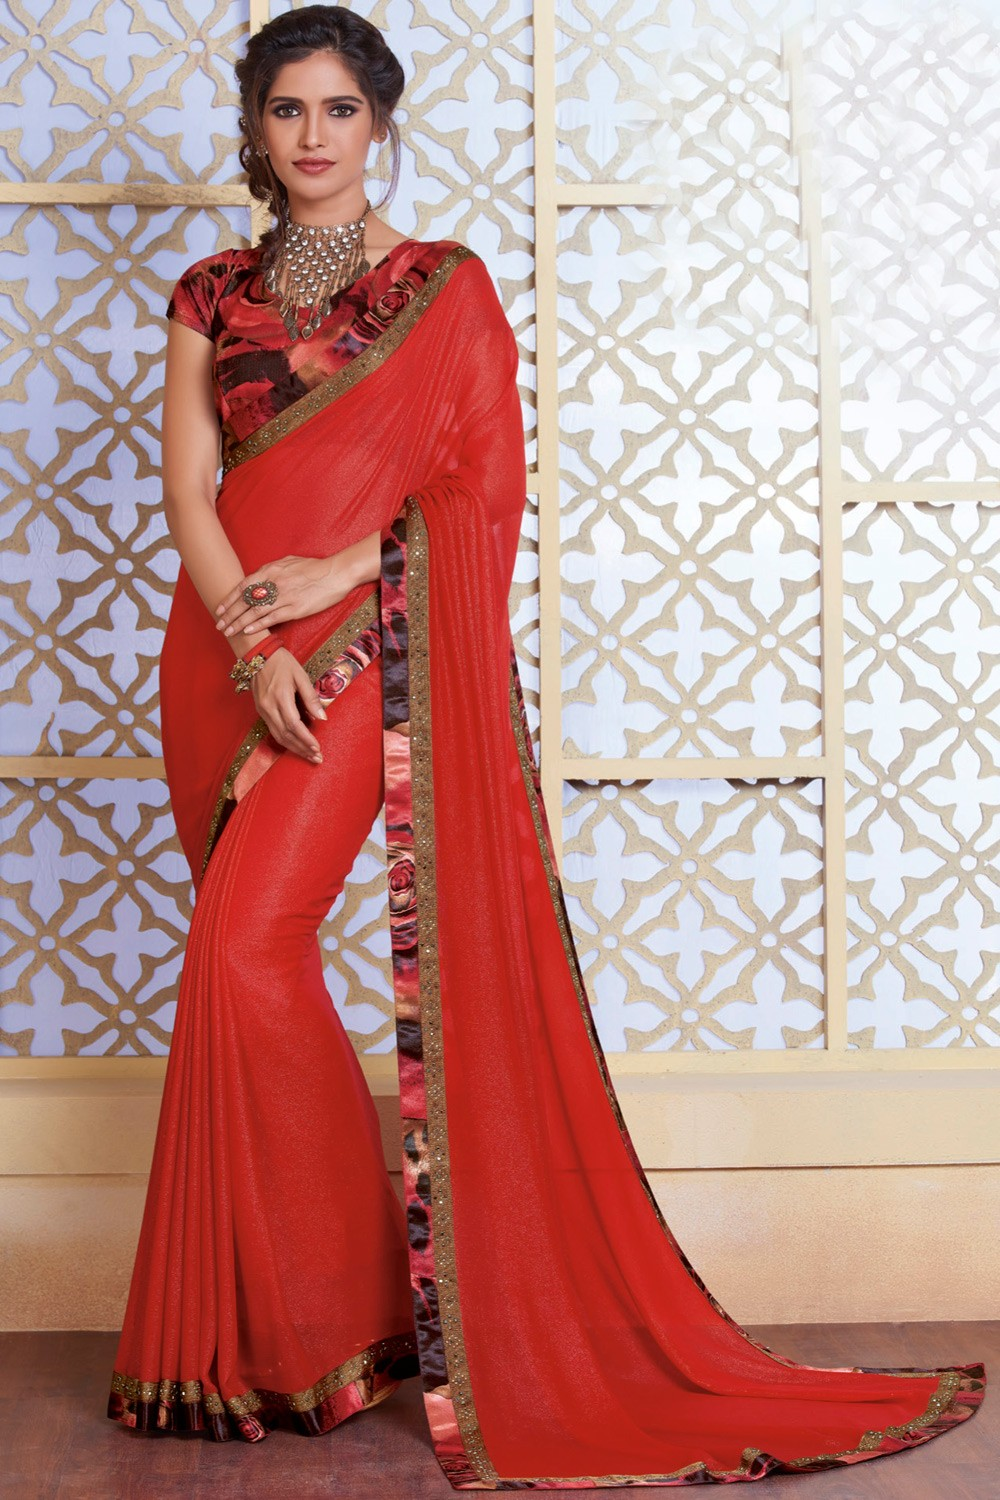 cb4a15d5c1 Paaneri Designer Red Color Stone Work Border Georgette Printed Saree-Product  Code-17120482534 - Women's